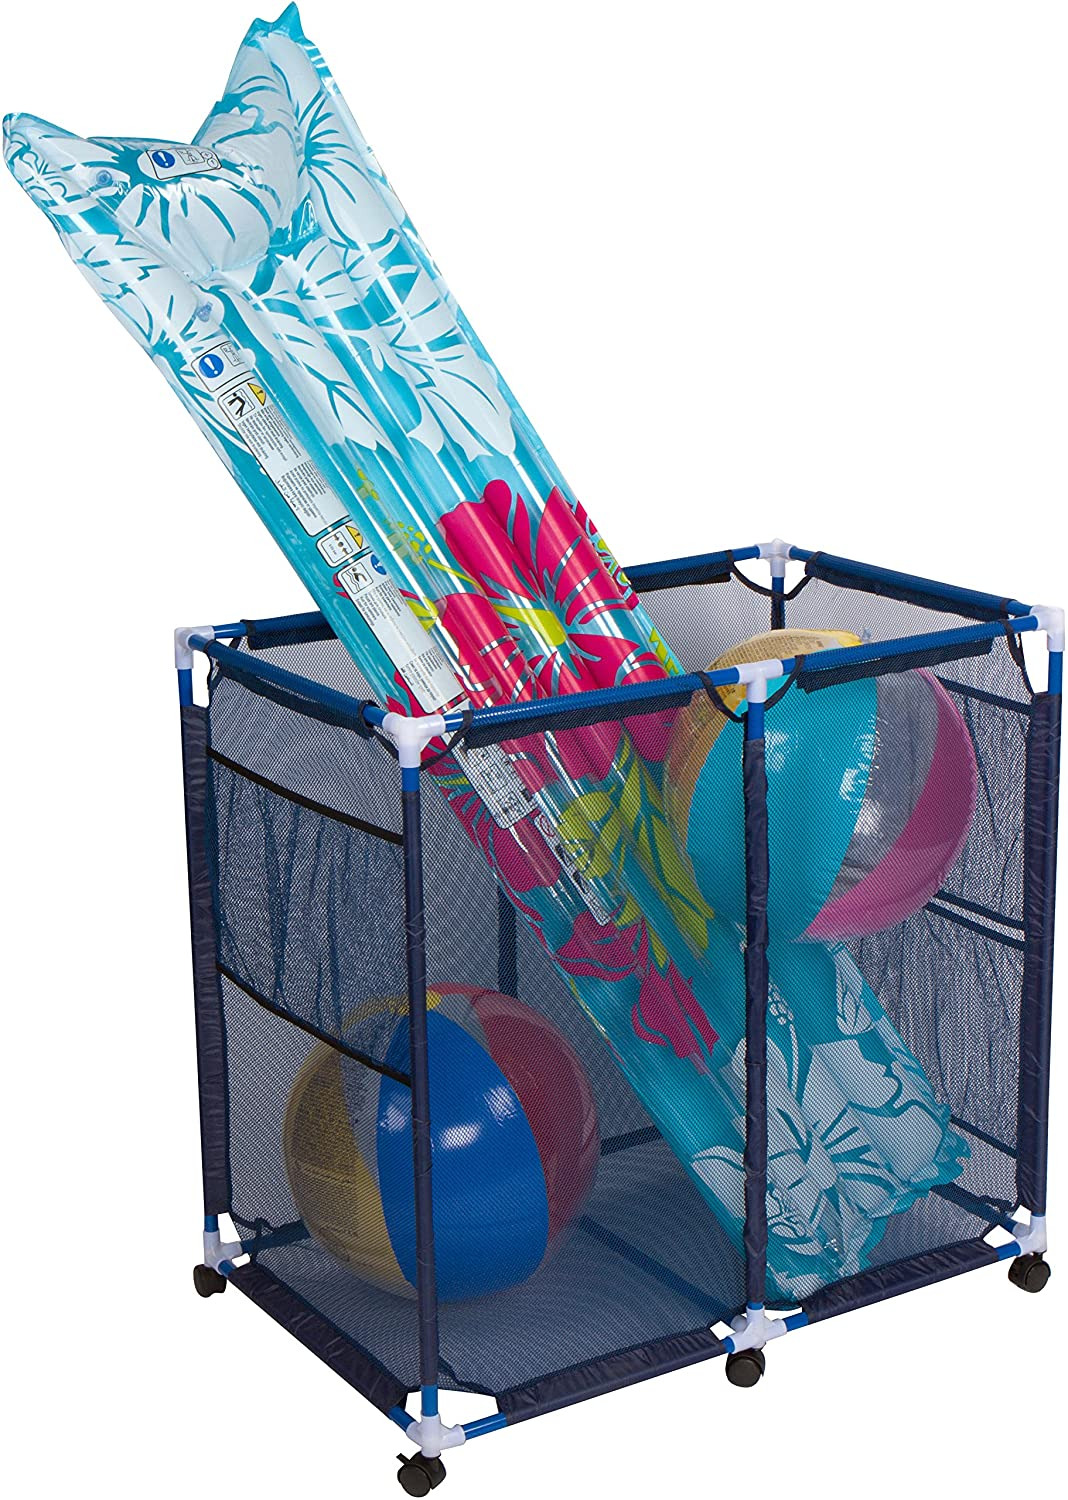 """Pool toy Holder Best Of Trademark Innovations 35"""" X 24"""" Rolling Pool Storage Cart for toys and Accessories"""